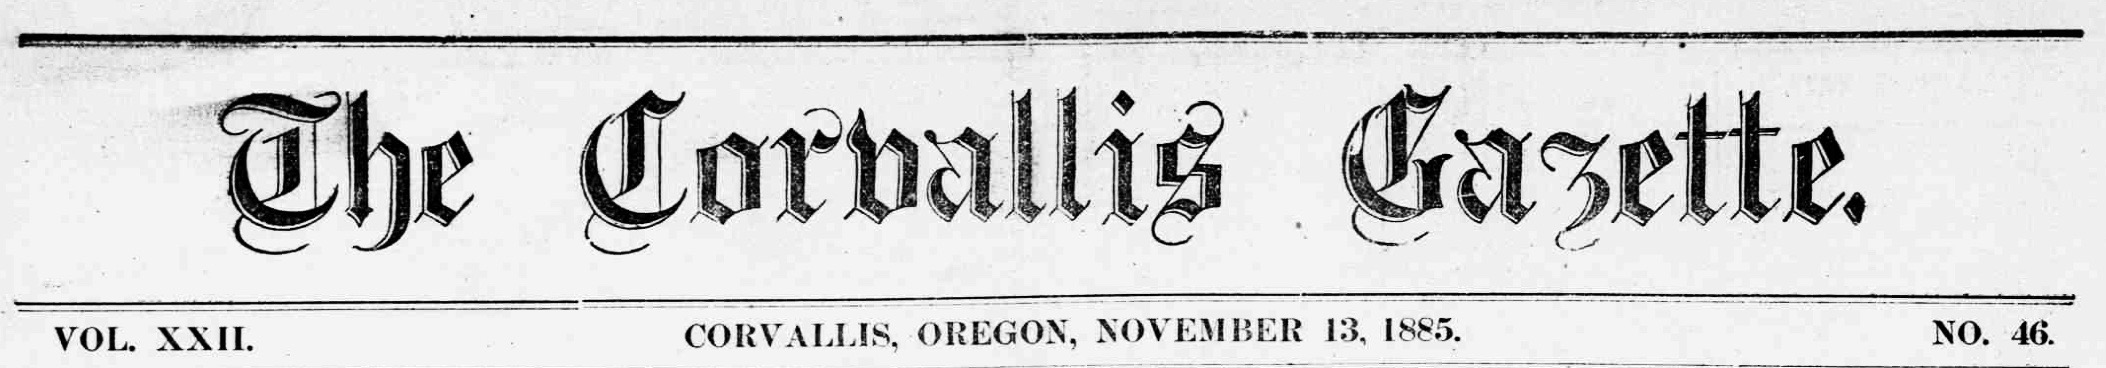 The Corvallis gazette. (Corvallis, Or.) November 13, 1885, Image 1. http://oregonnews.uoregon.edu/lccn/sn84022650/1885-11-13/ed-1/seq-1/